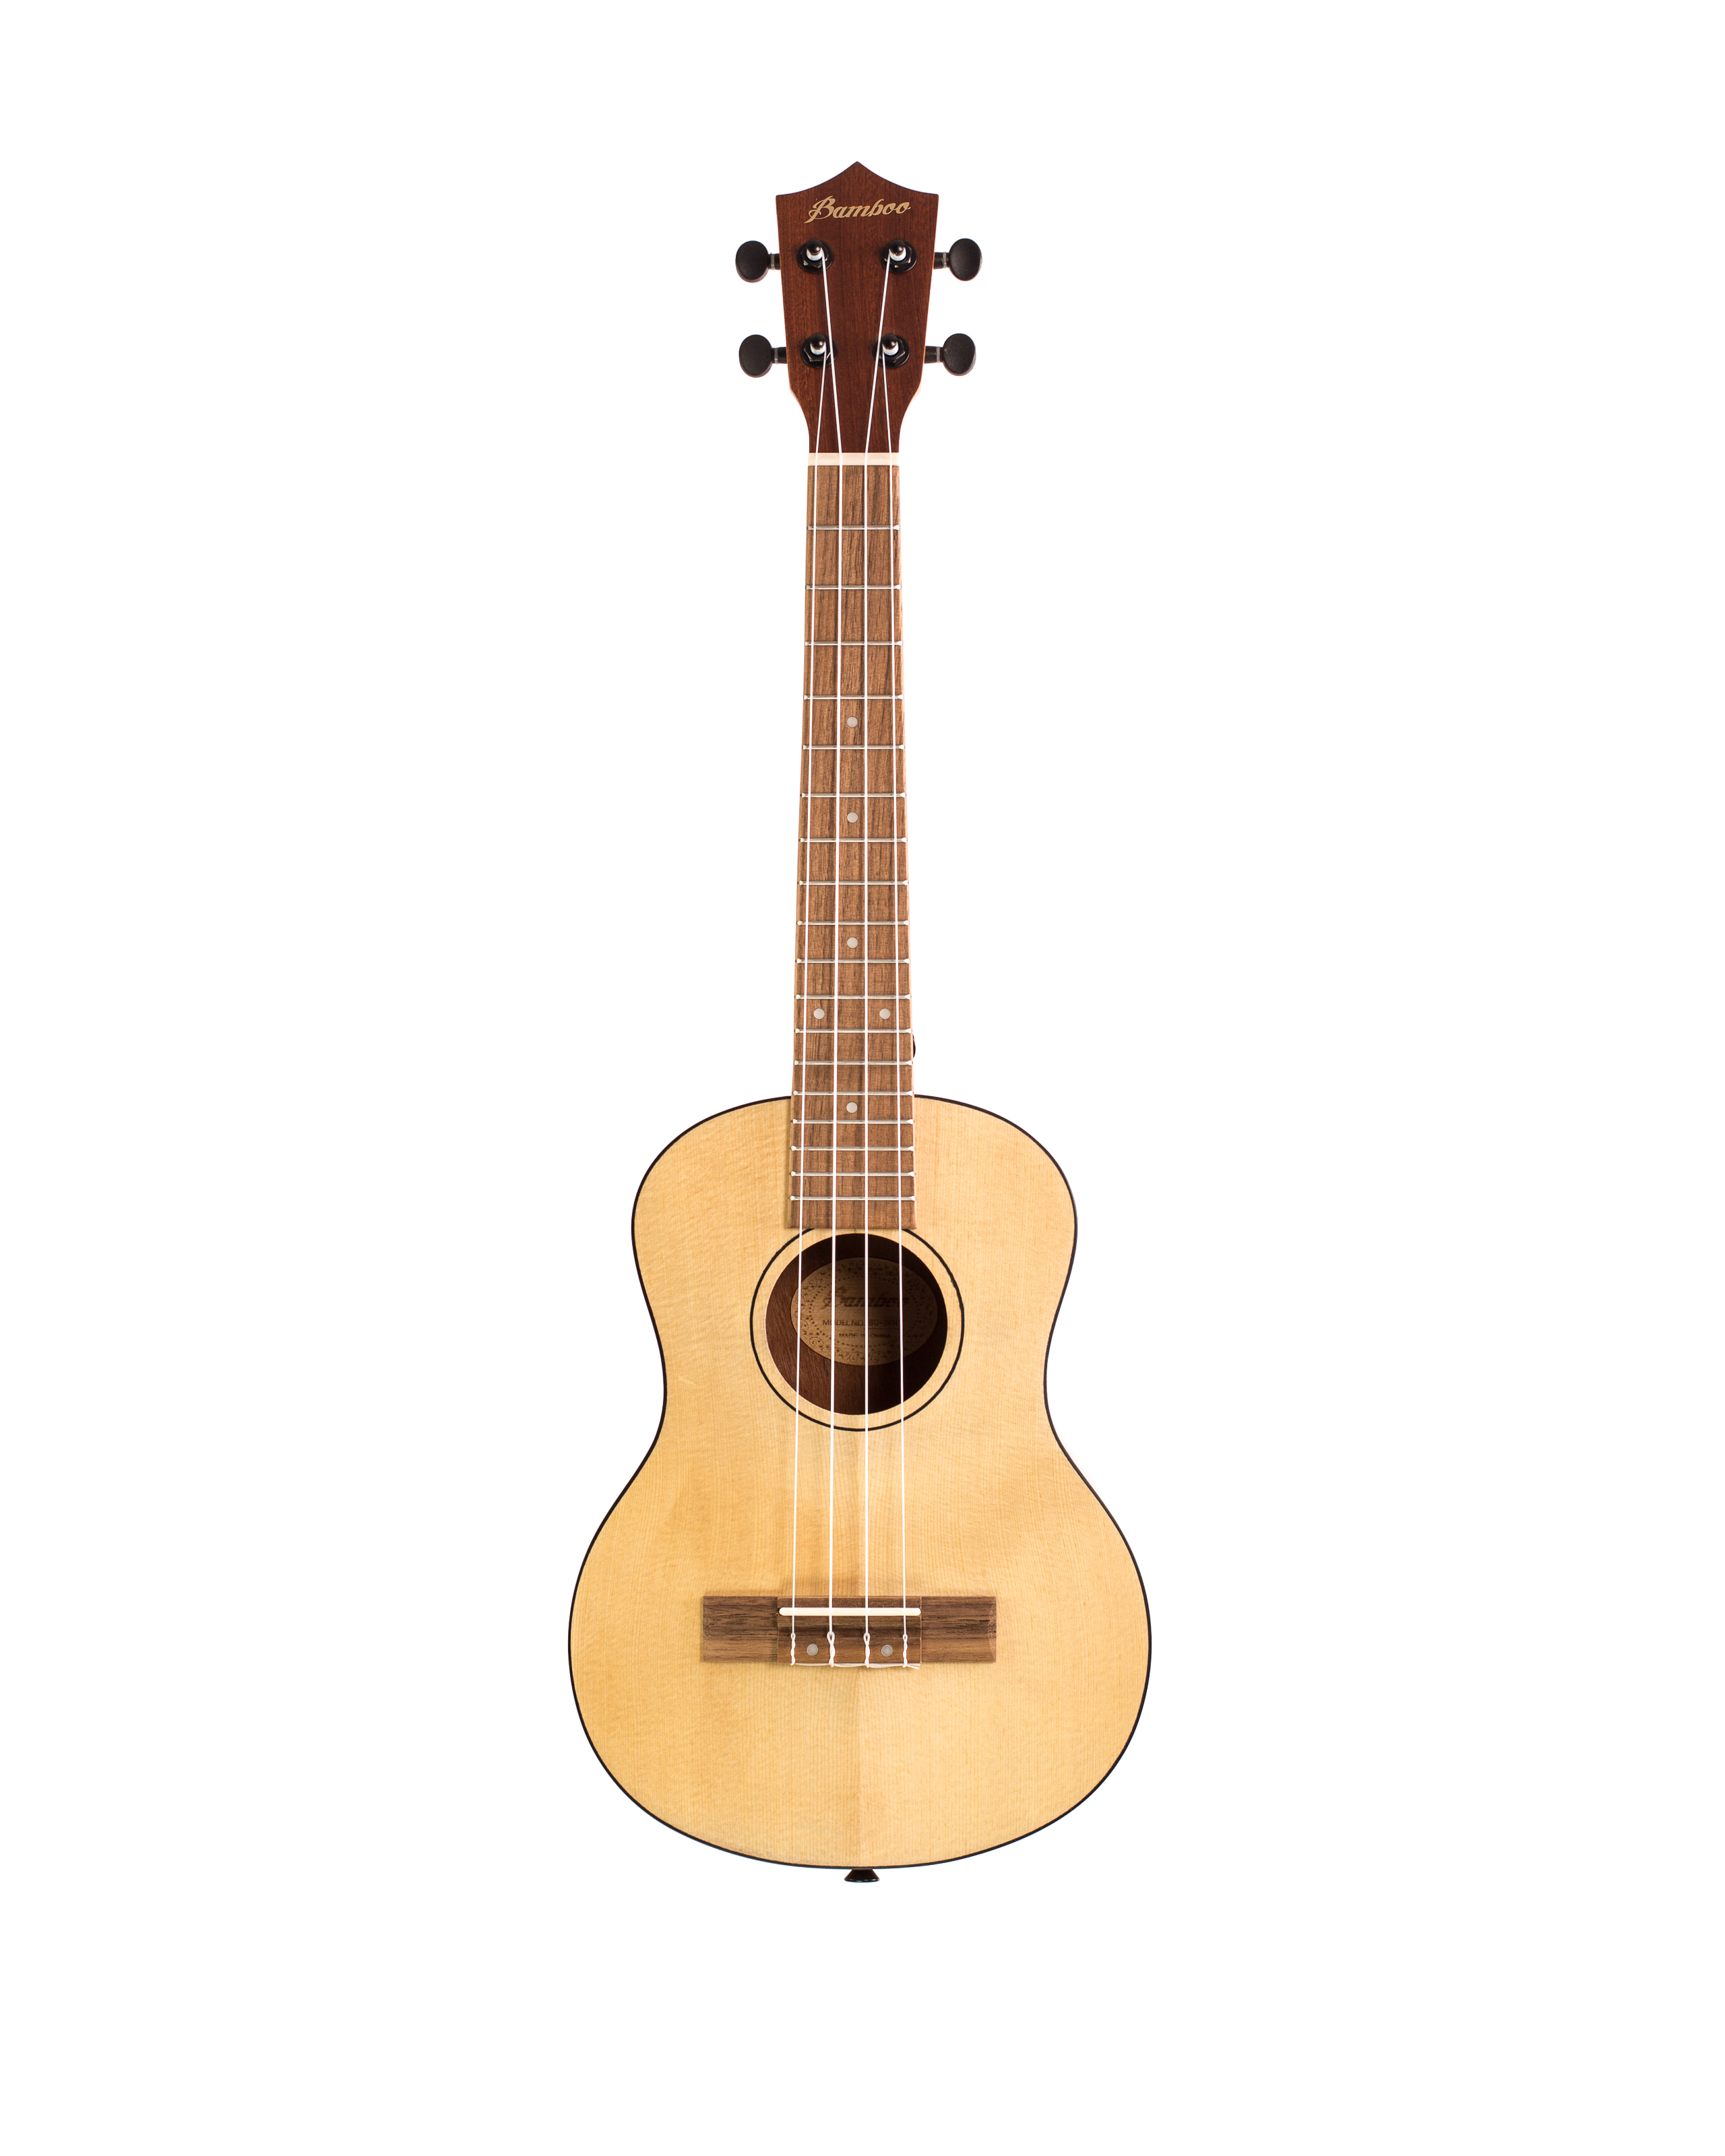 BAMBOO Natural Classic Concert Ukulele Classic Series Acoustic | For Beginners and Professionals | Wood Spruce, Sapele & Walnut | With Gig Bag (Special Edition)